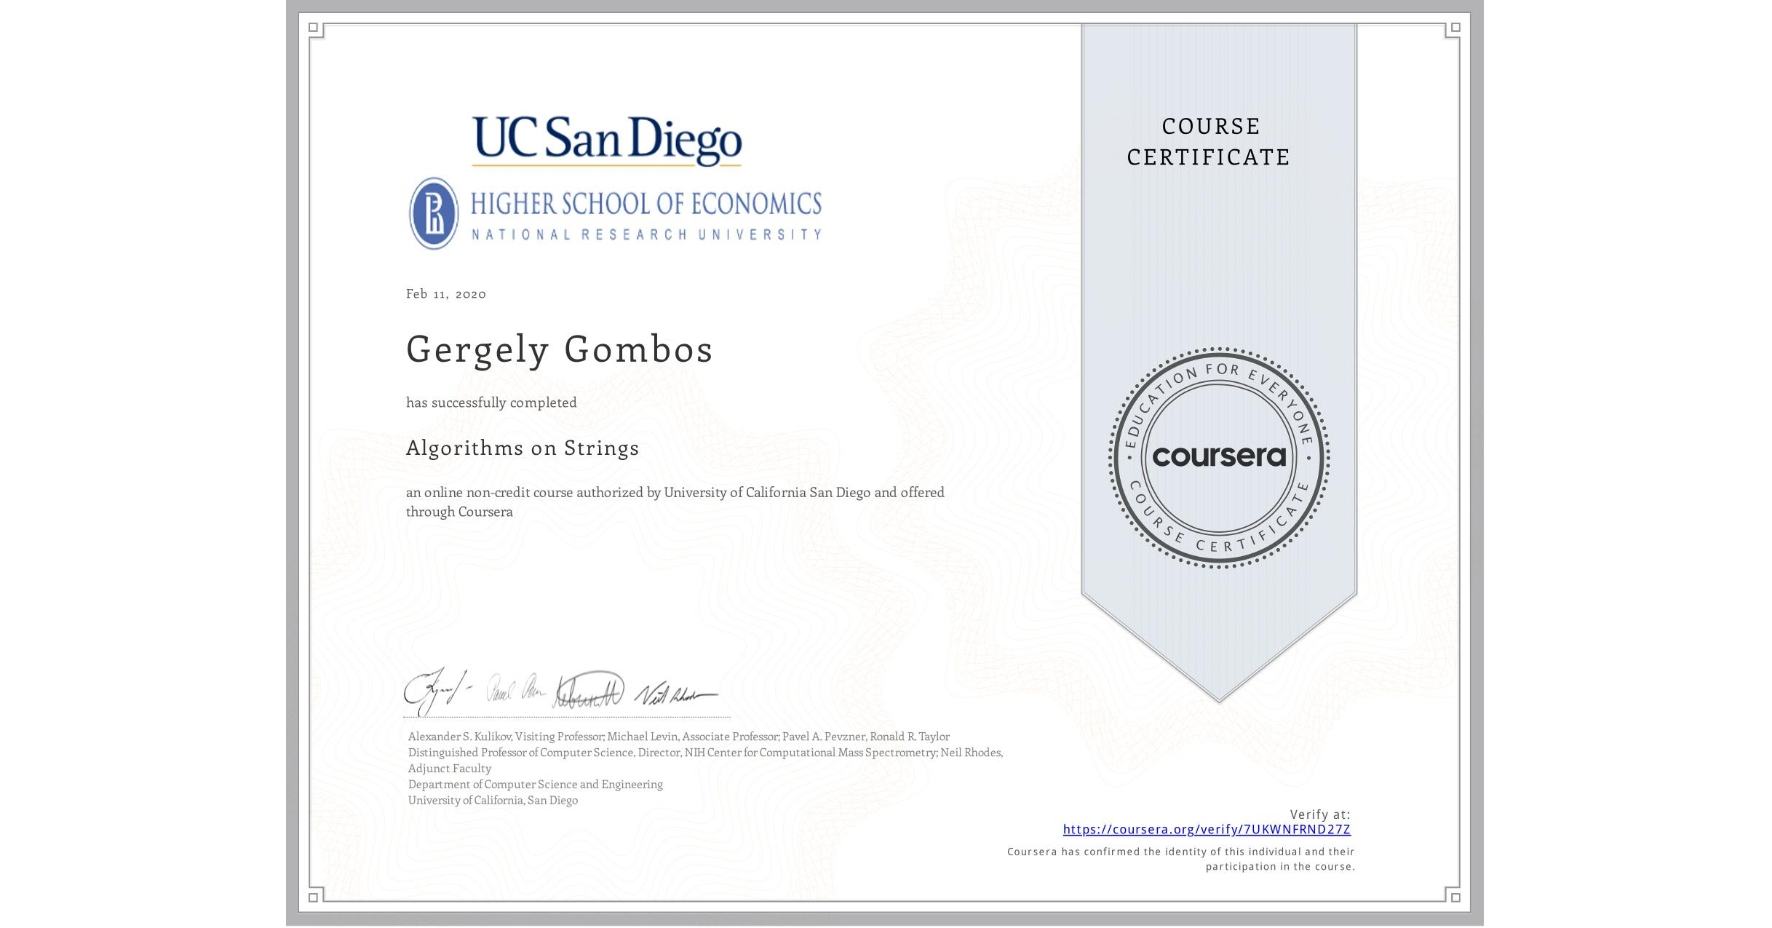 View certificate for Gergely Gombos, Algorithms on Strings, an online non-credit course authorized by University of California San Diego & HSE University and offered through Coursera